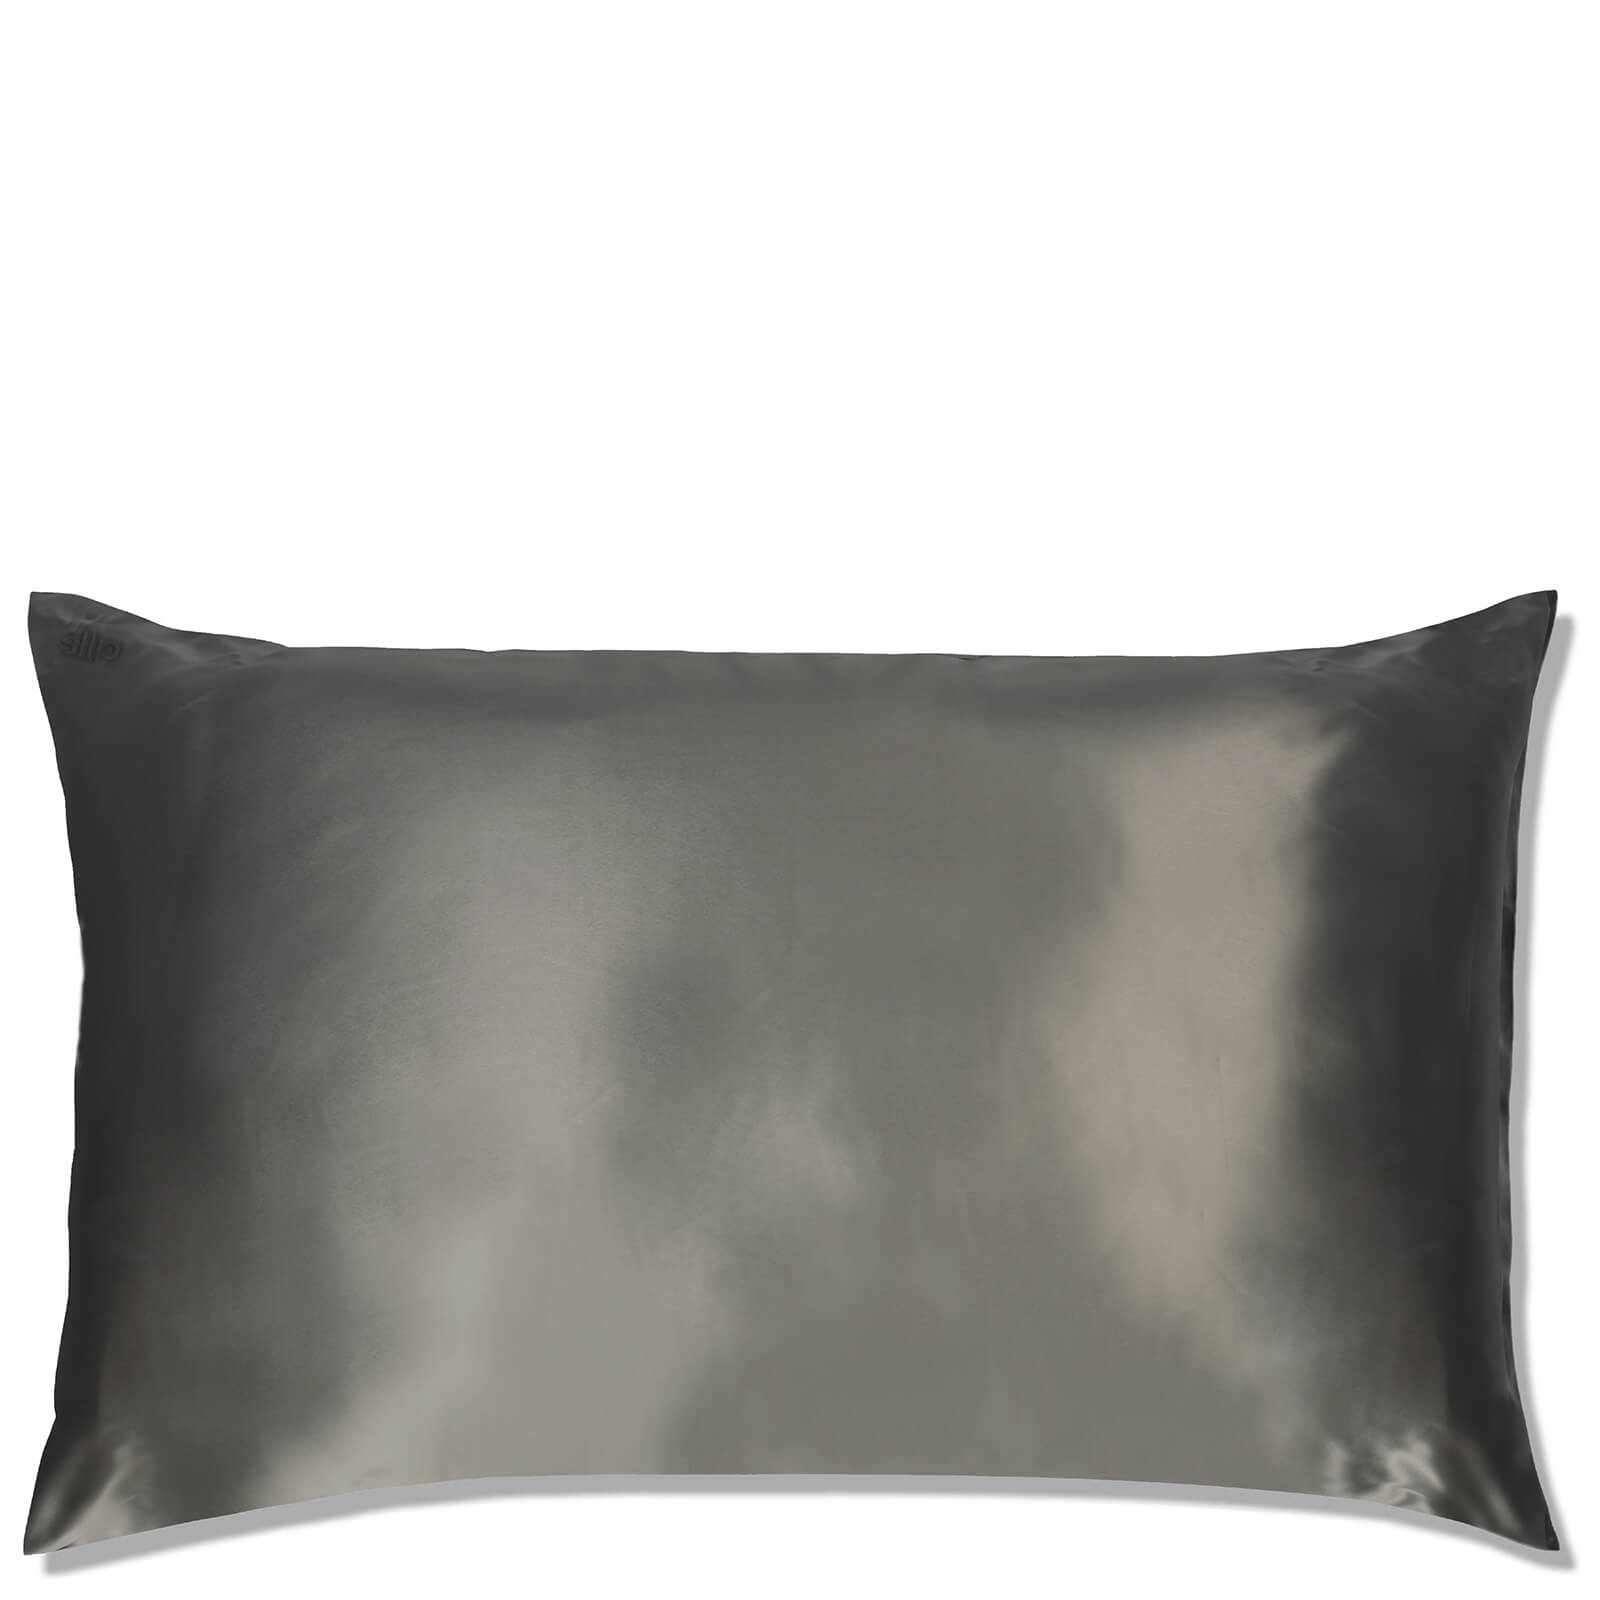 Slip Pillowcase Slip Silk Pillowcase King Charcoal